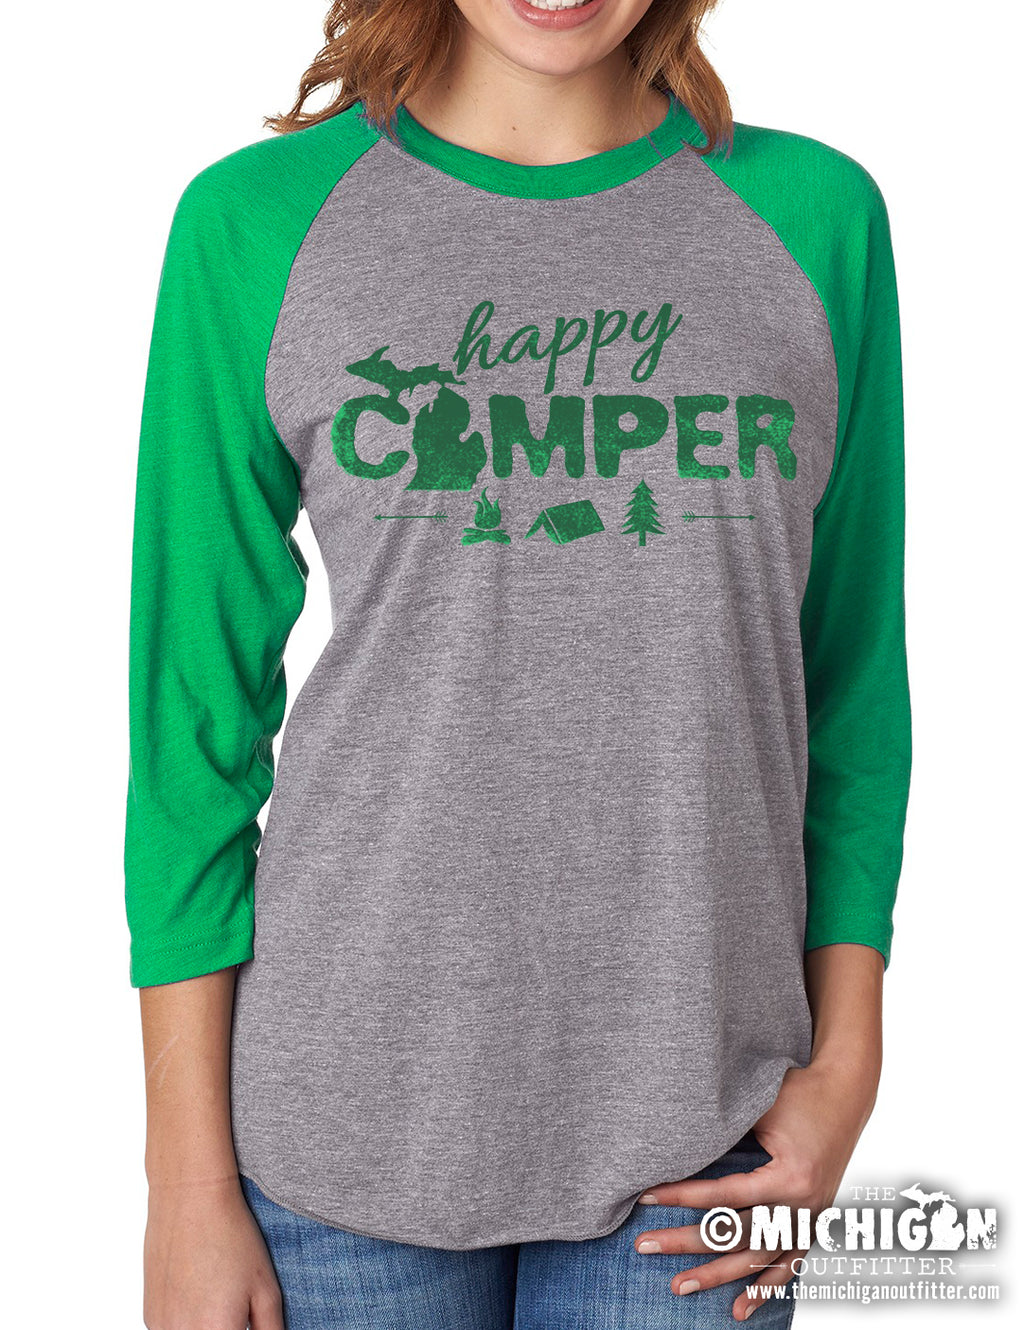 Happy Camper - Unisex 3/4 Sleeve - Heather Gray and Green